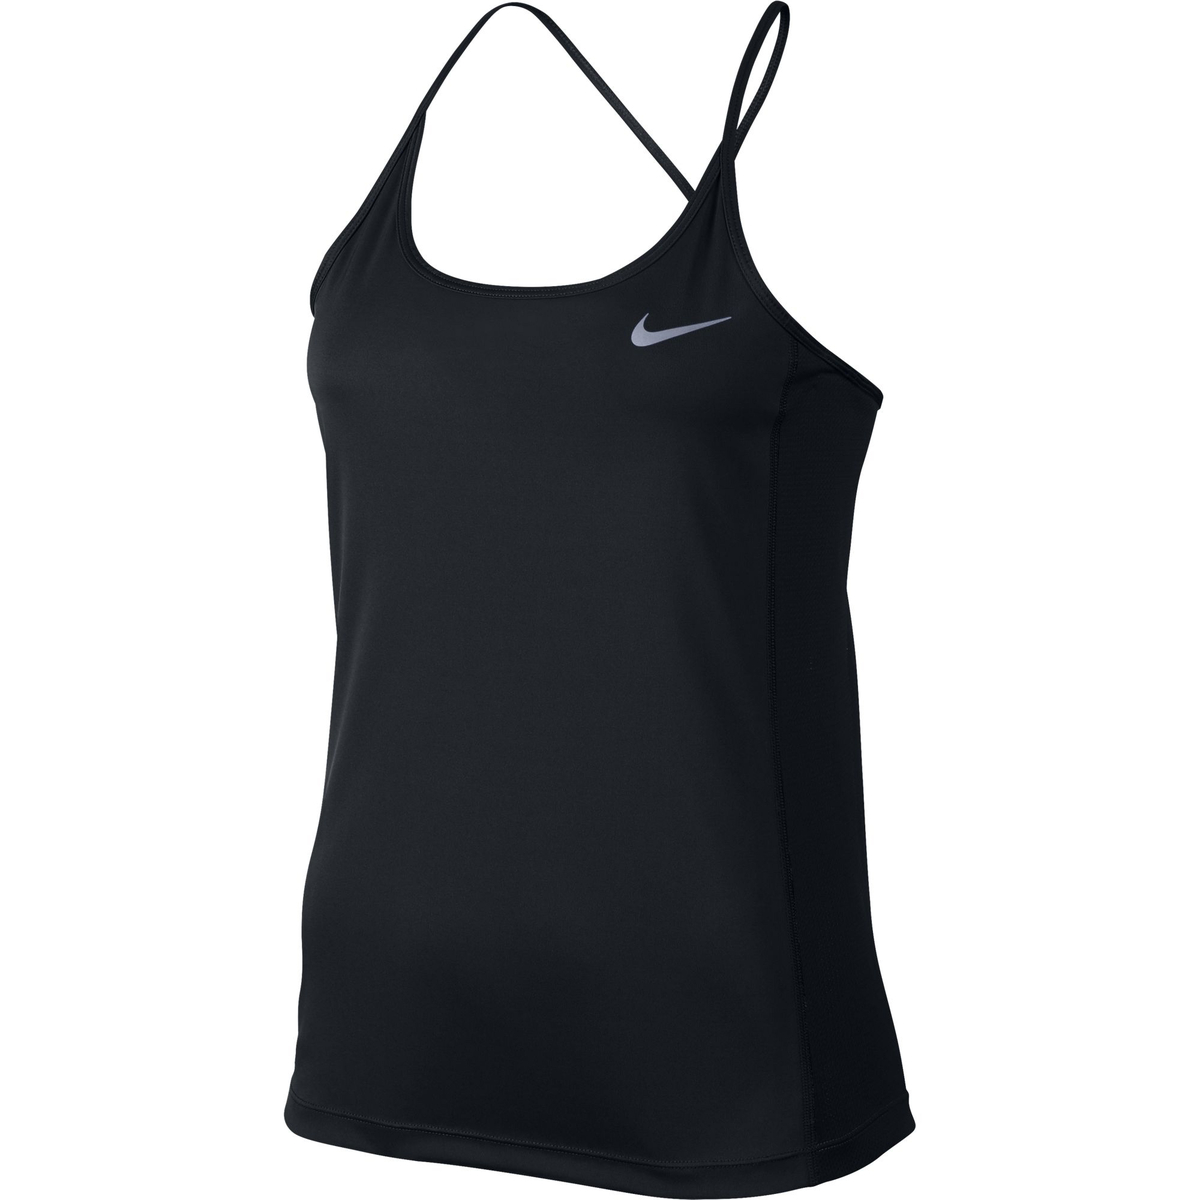 9a576faa Find every shop in the world selling durga dame singlet at PricePi.com